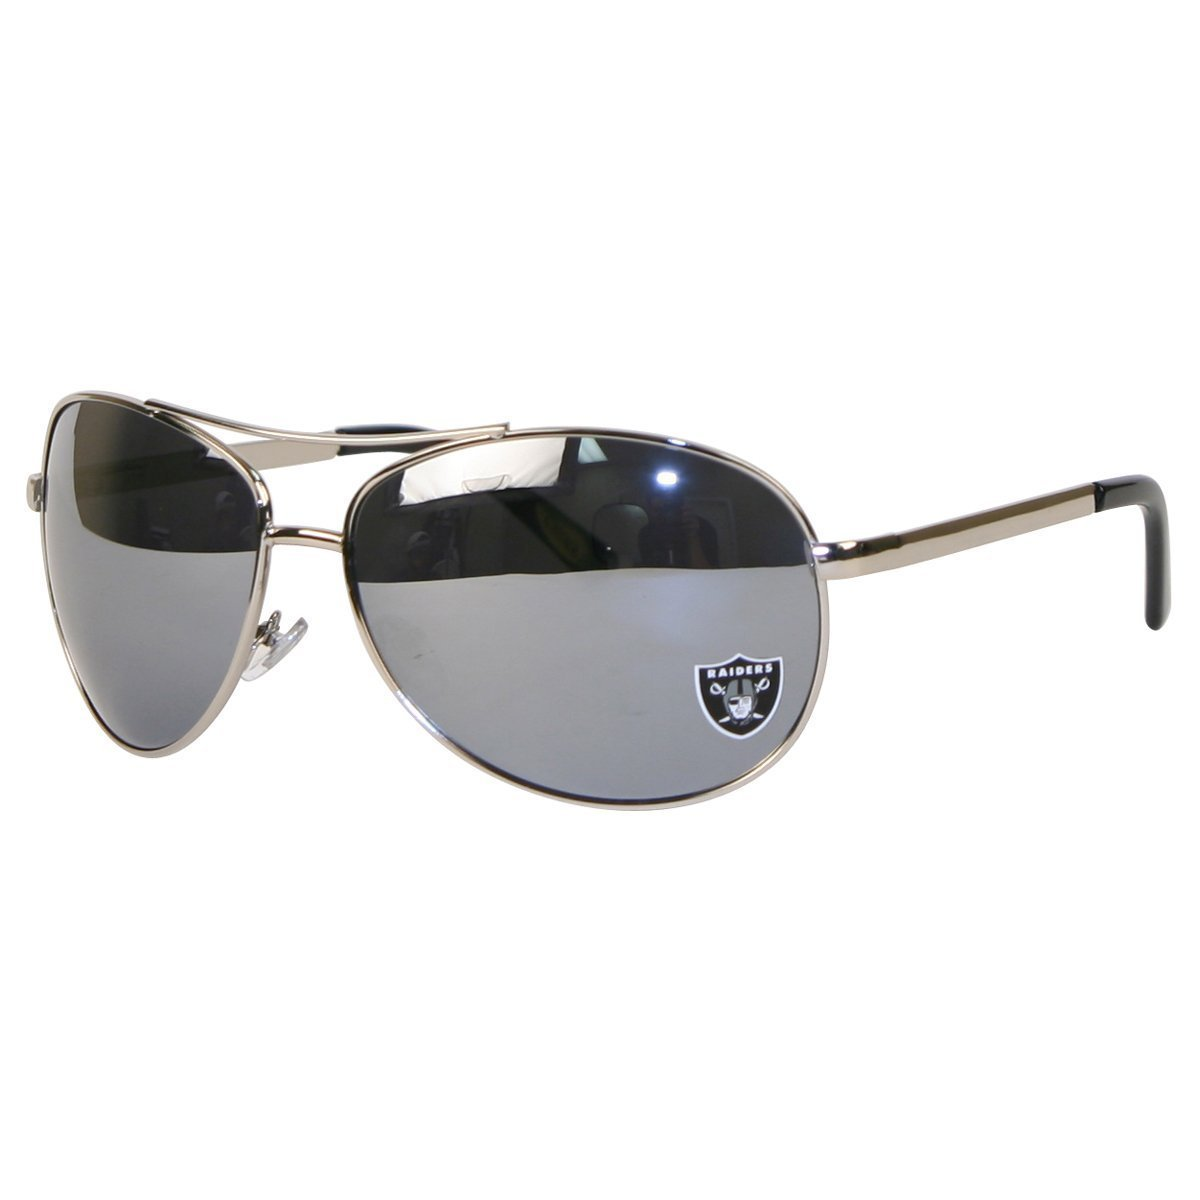 Oakland Raiders NFL Team Big Aviator Sunglasses - Mirrored Lenses - Hinged Arms